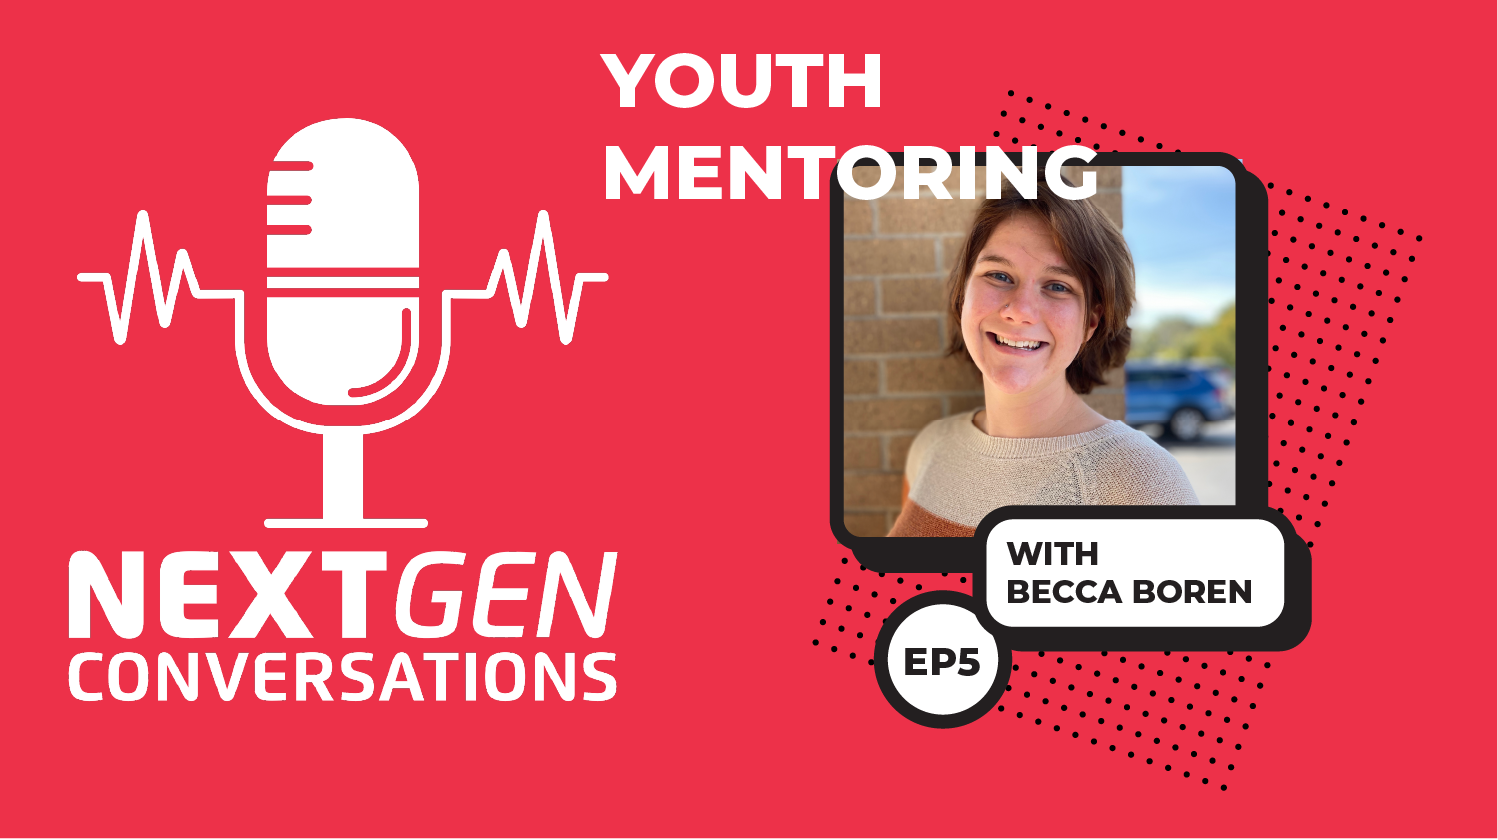 NextGen Conversations: Youth Mentoring with Becca Boren